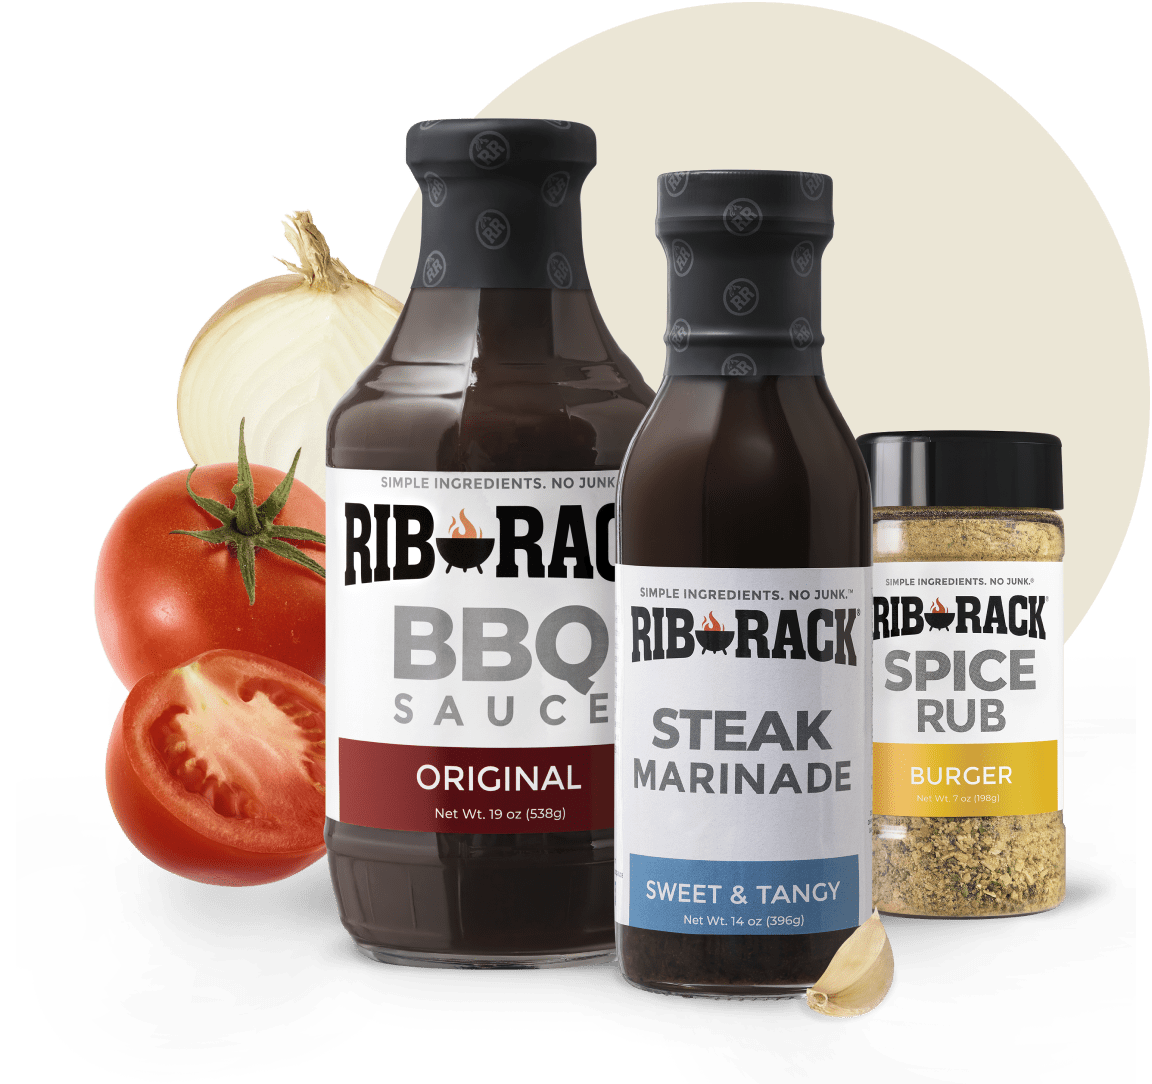 Bottle of Rib Rack Original BBQ Sauce